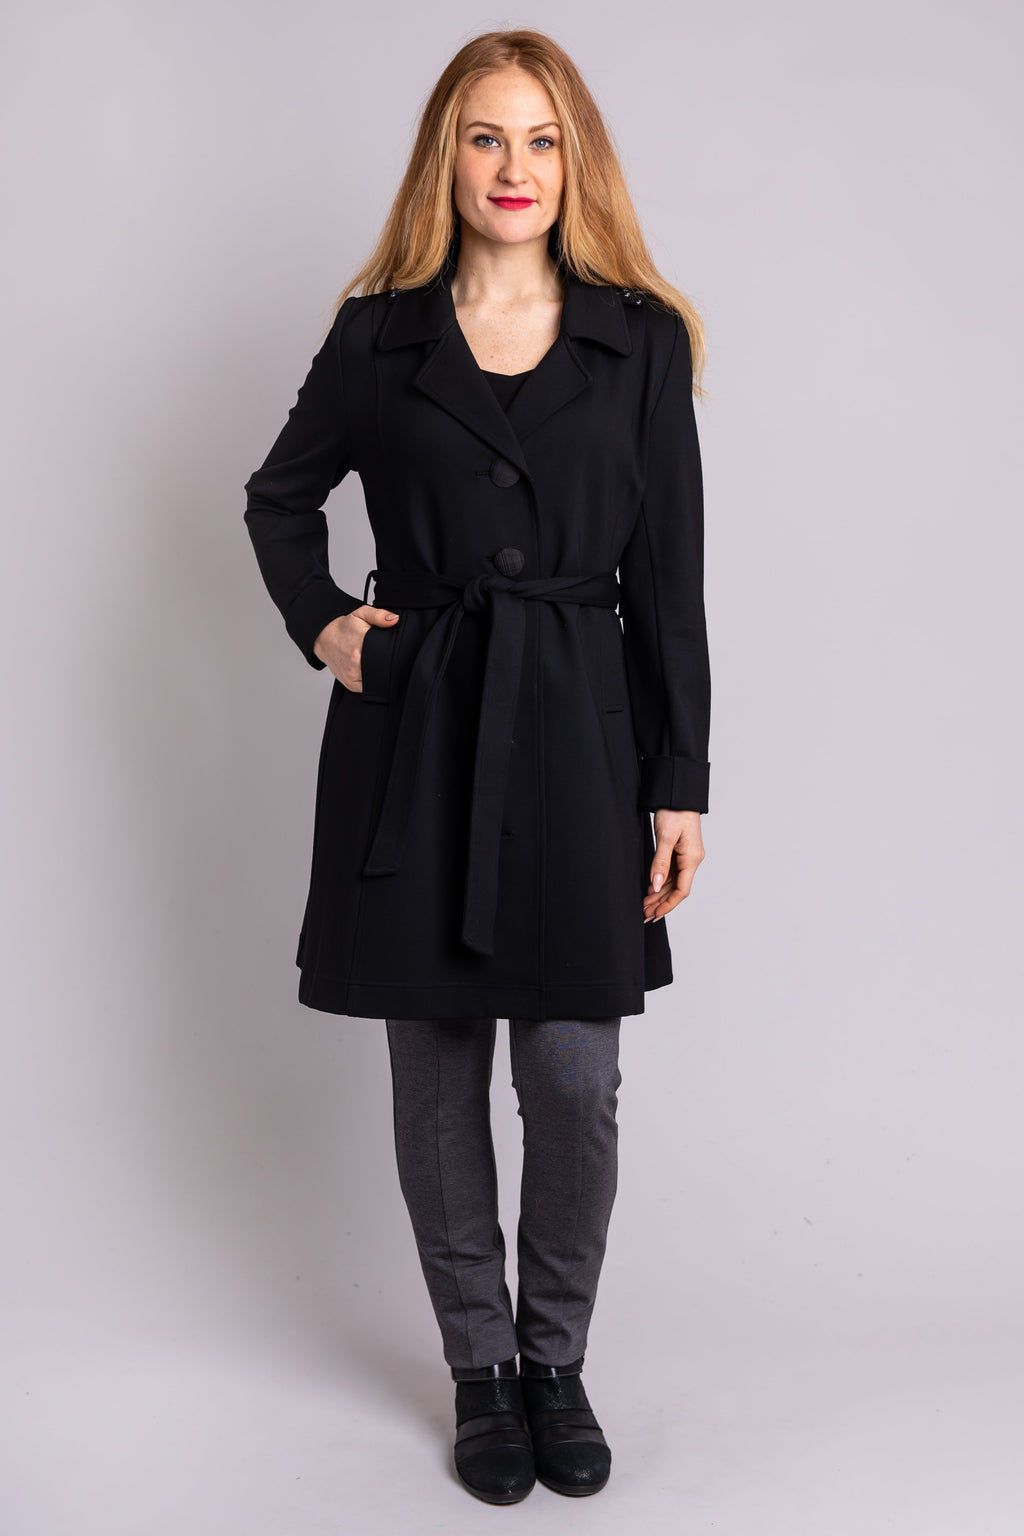 Marianas Trench Coat, Black, Modal - Blue Sky Clothing Co